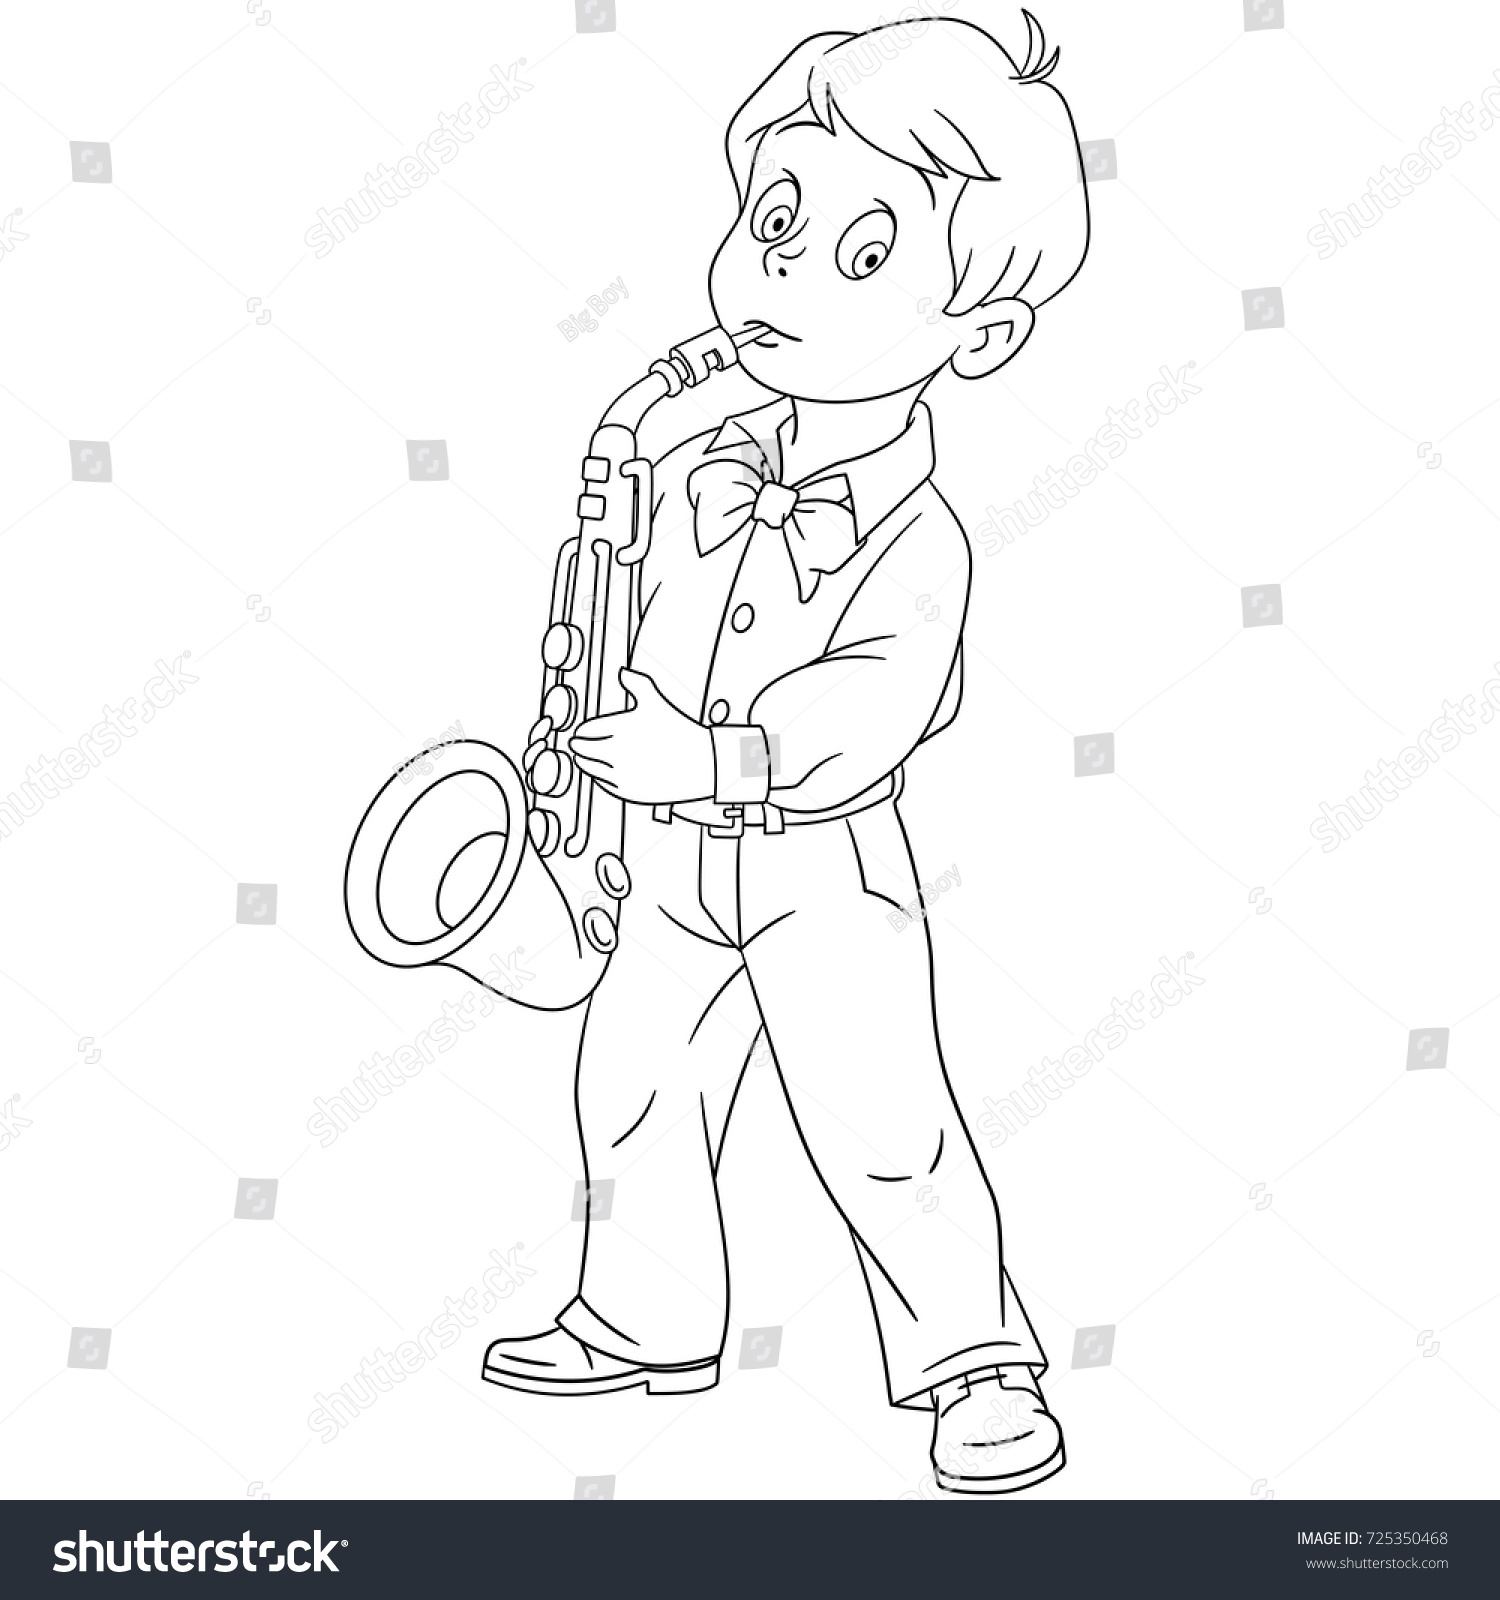 coloring page of cartoon boy playing saxophone music coloring book design for kids and children